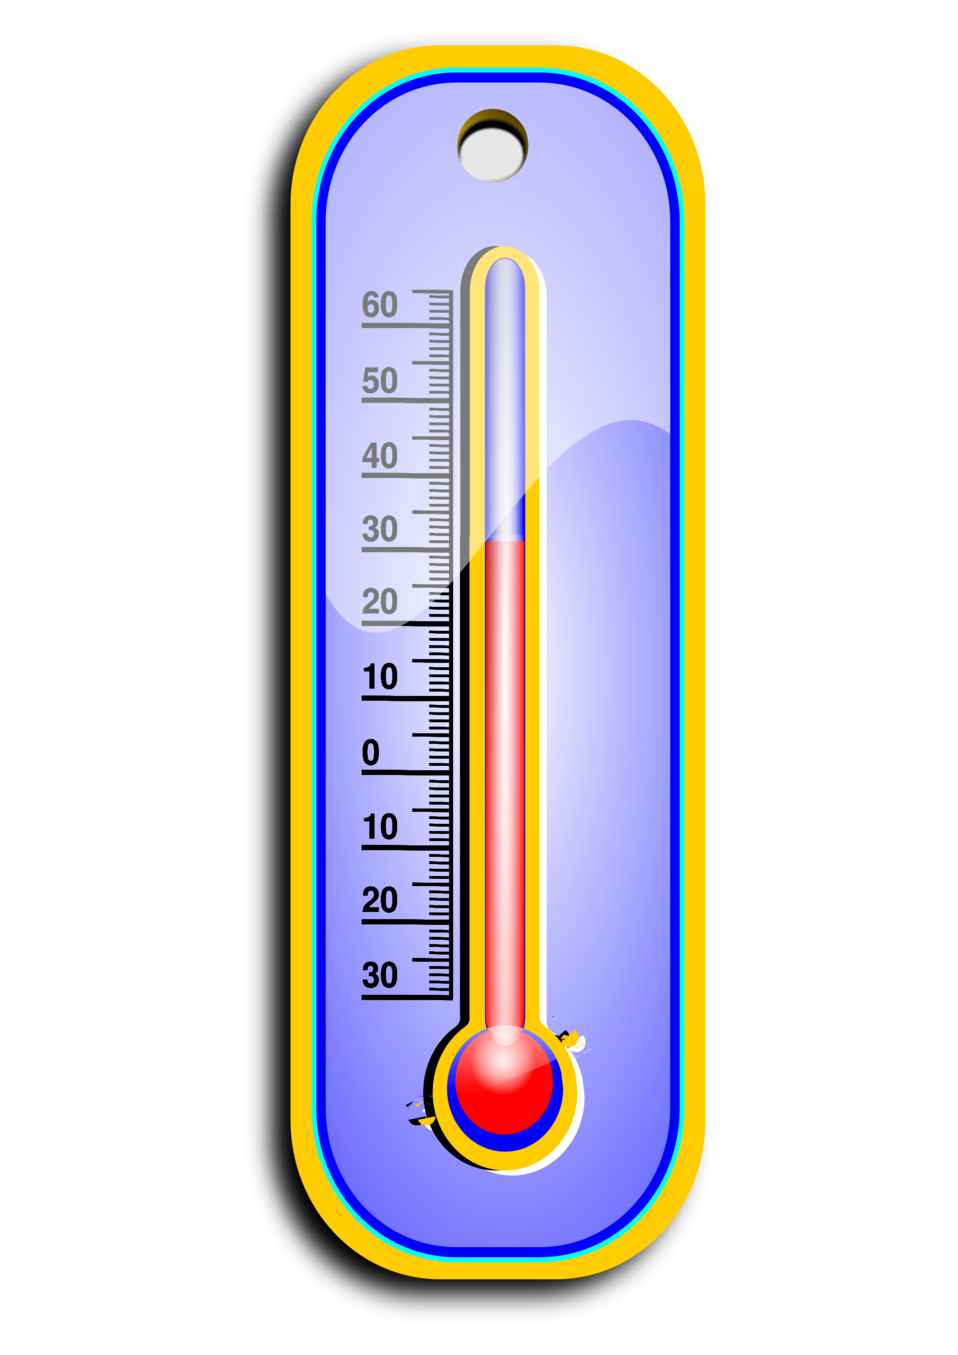 ... title thermometer description a simple thermometer clipart creator